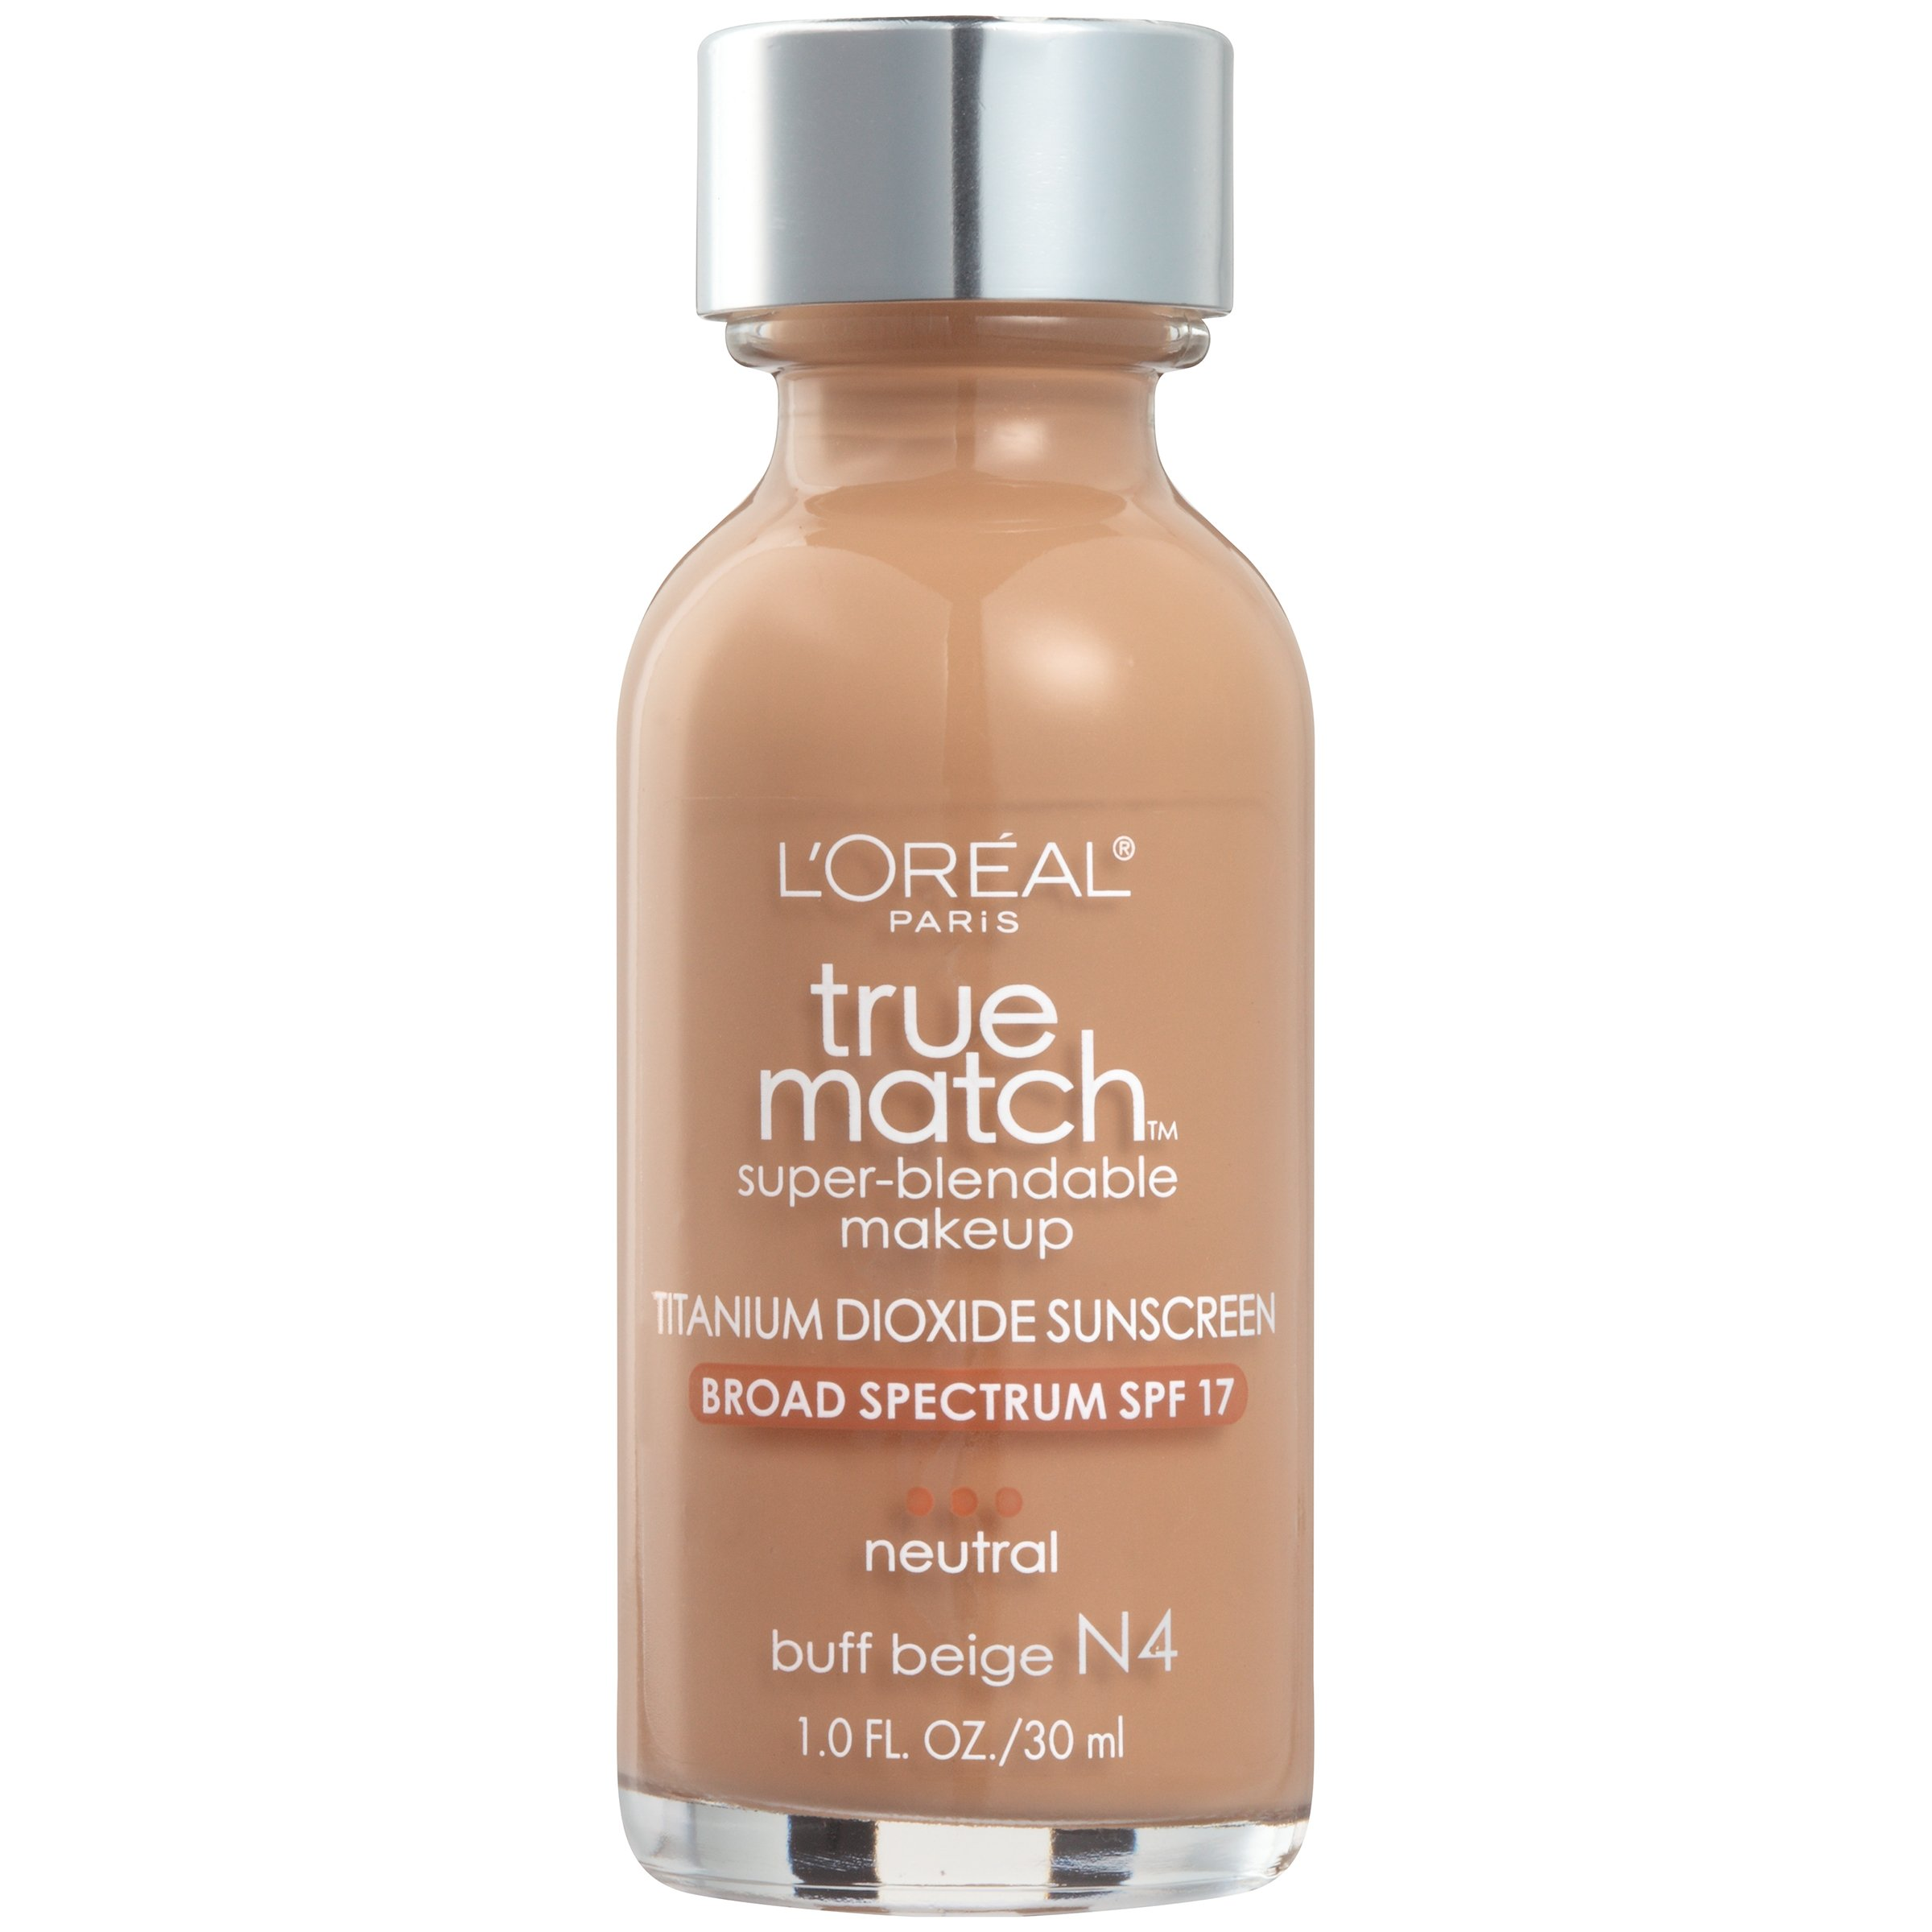 L'Oreal Paris Makeup True Match Super-Blendable Liquid Foundation, Buff Beige N4, 1 Fl Oz,1 Count